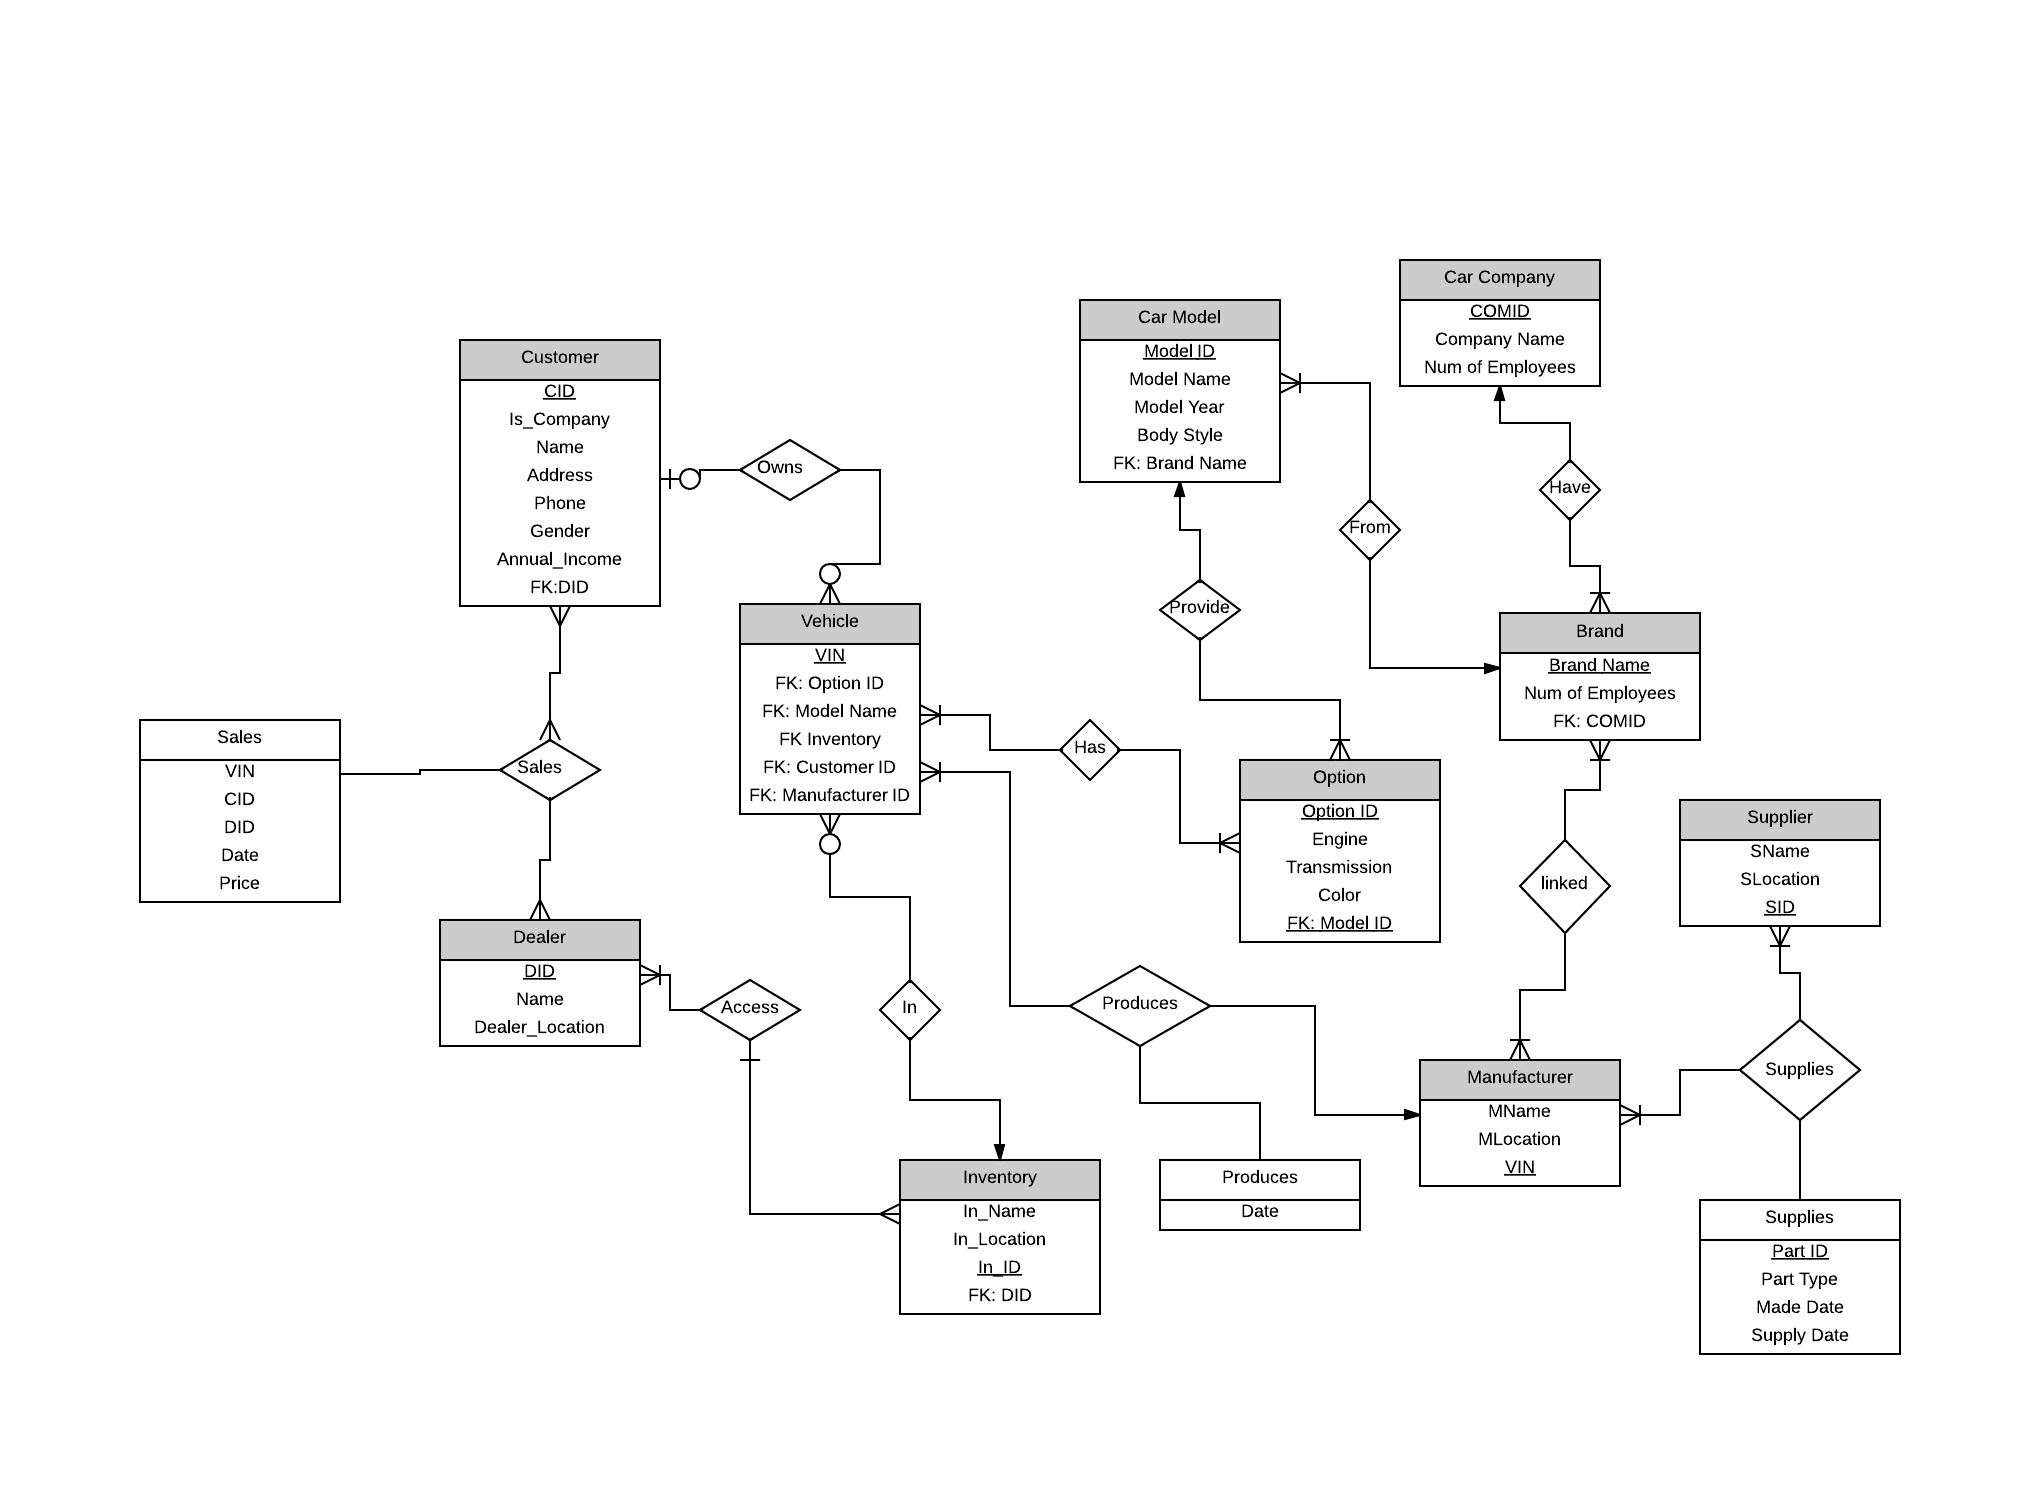 Need Help On An Er Diagram For An Automobile Company - Stack